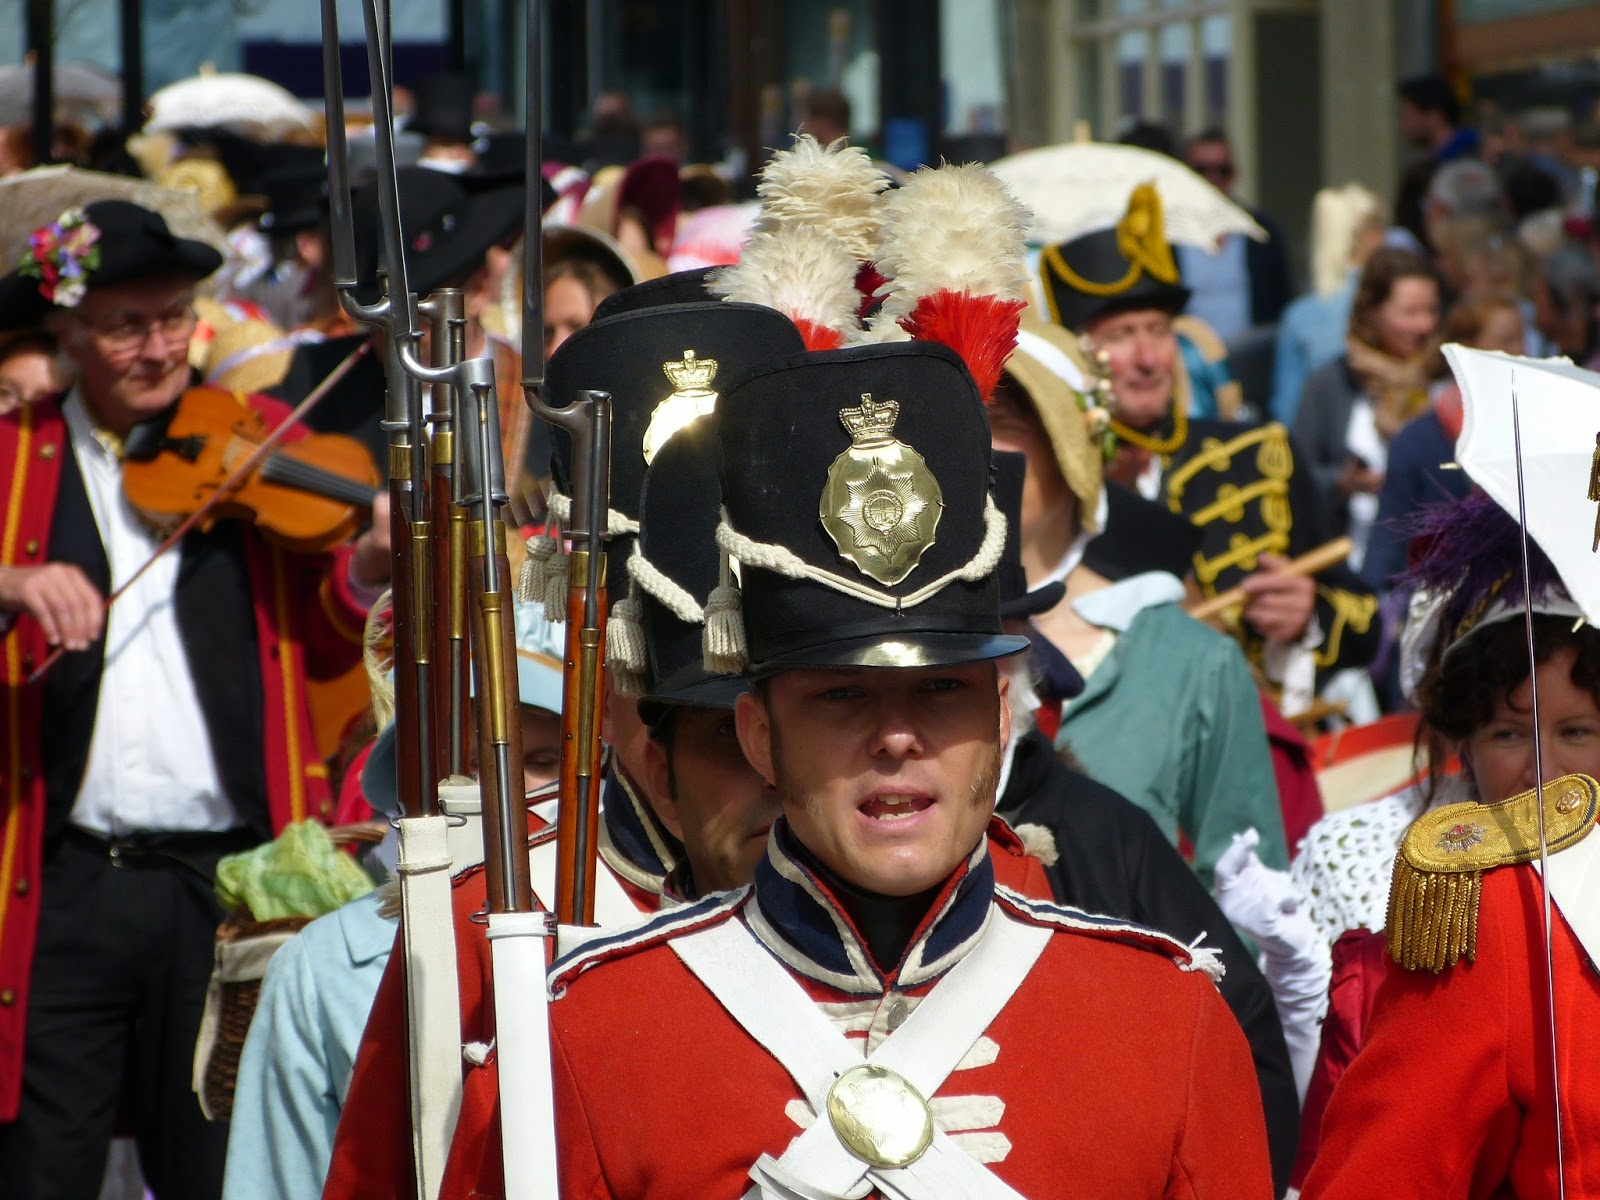 Soldiers in the Jane Austen Regency Promenade